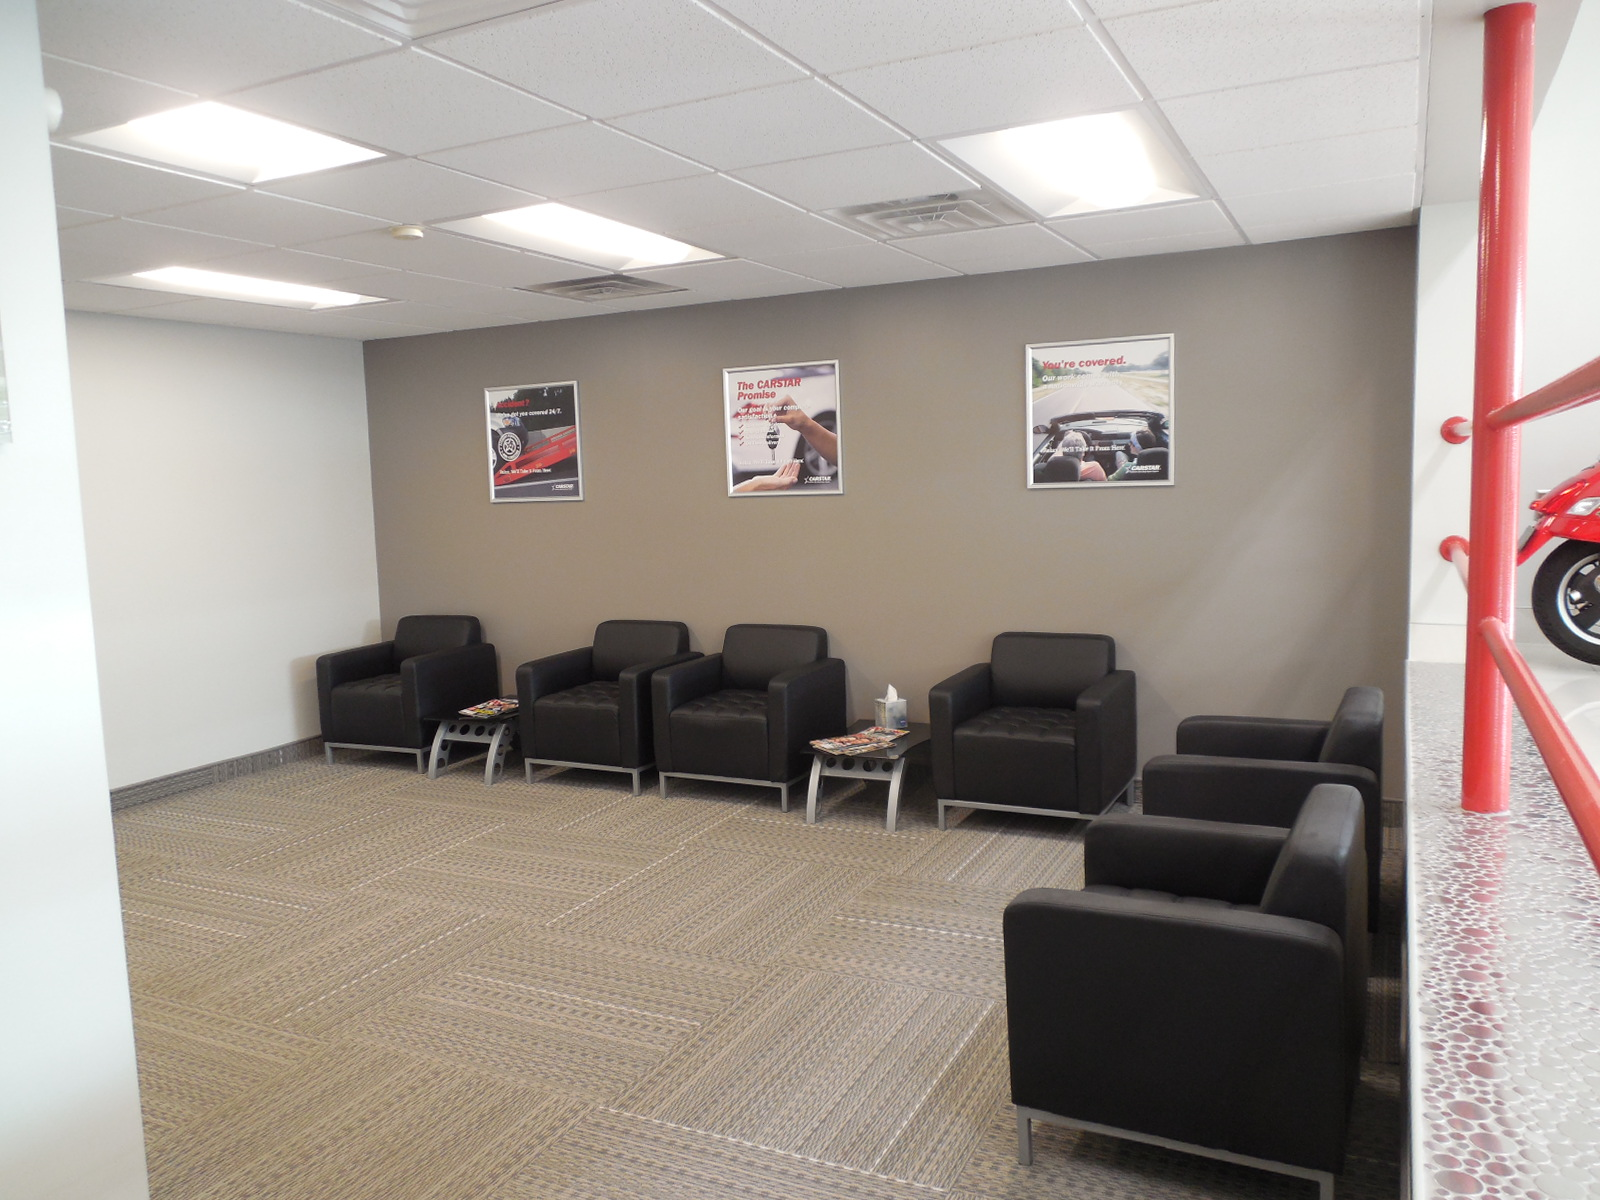 CARSTAR West Seneca: Customer Waiting Area